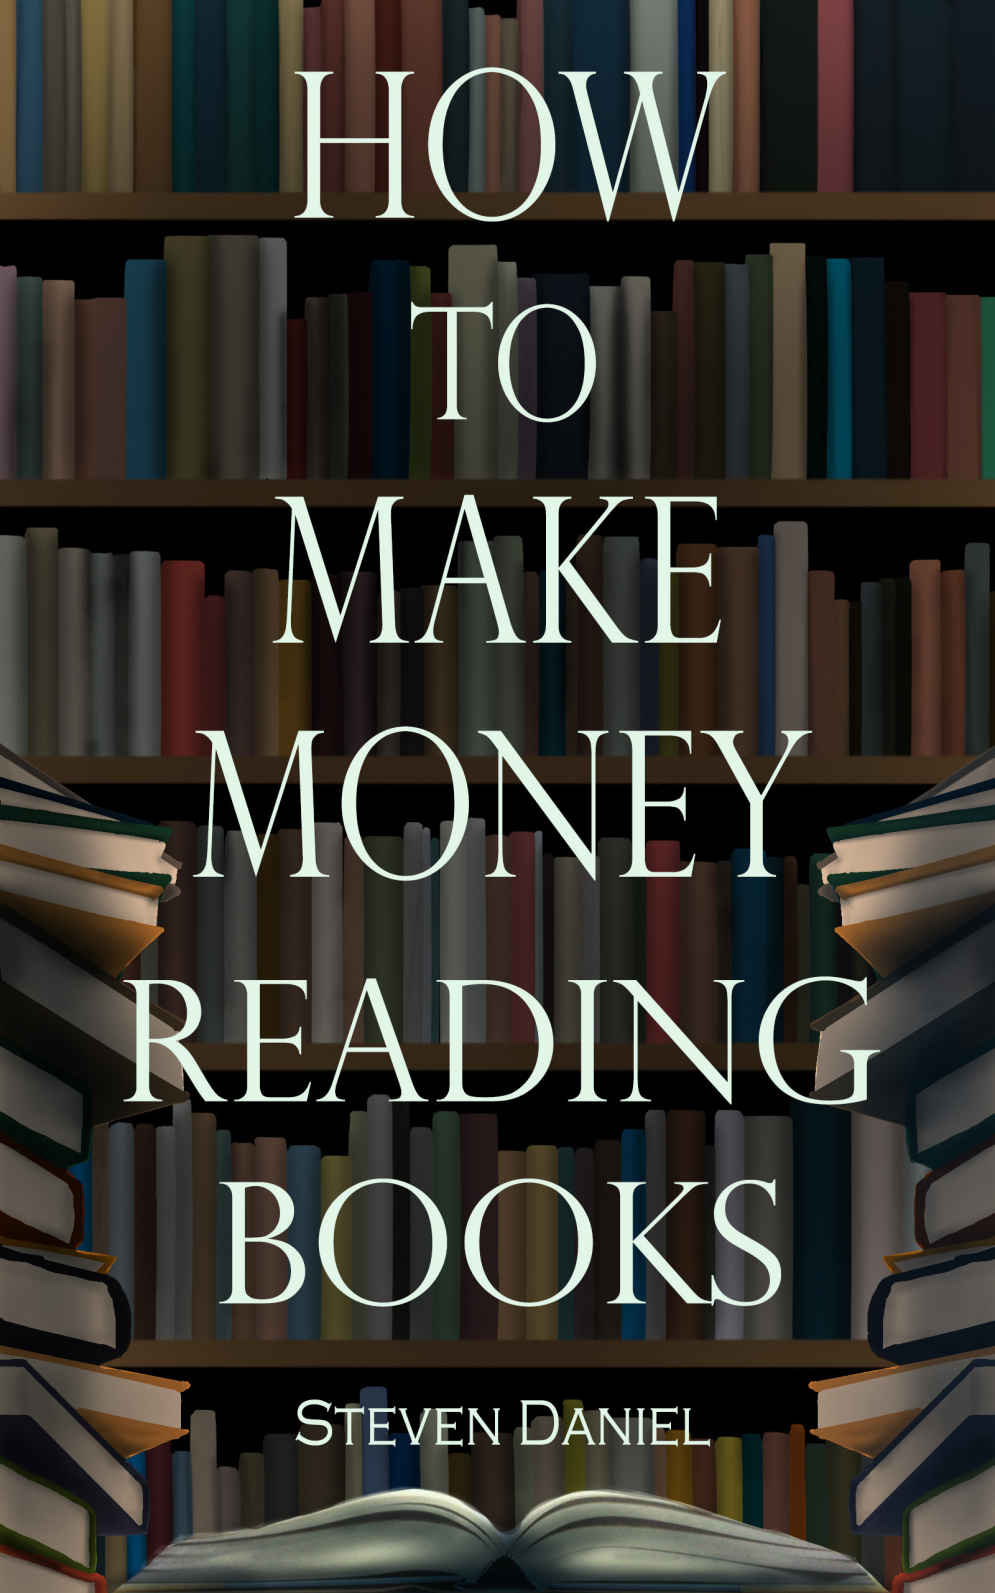 How to Make Money Reading Books